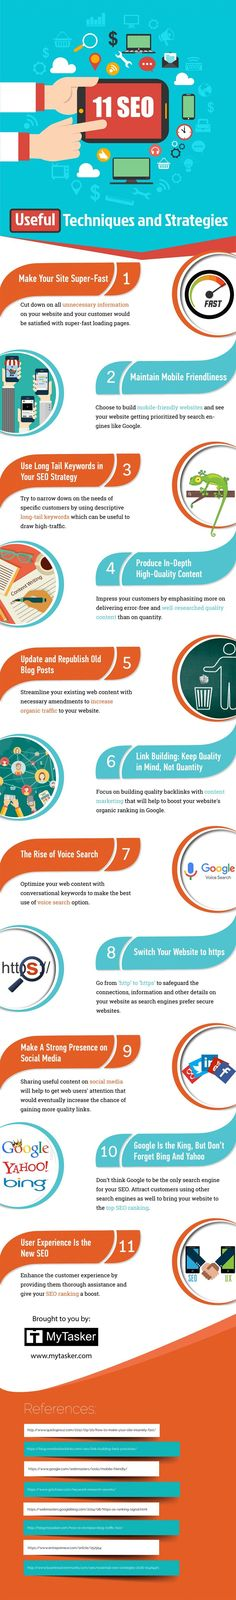 11 #SEO Techniques Even Beginners Can Implement to Rank Higher on Google #Infographic